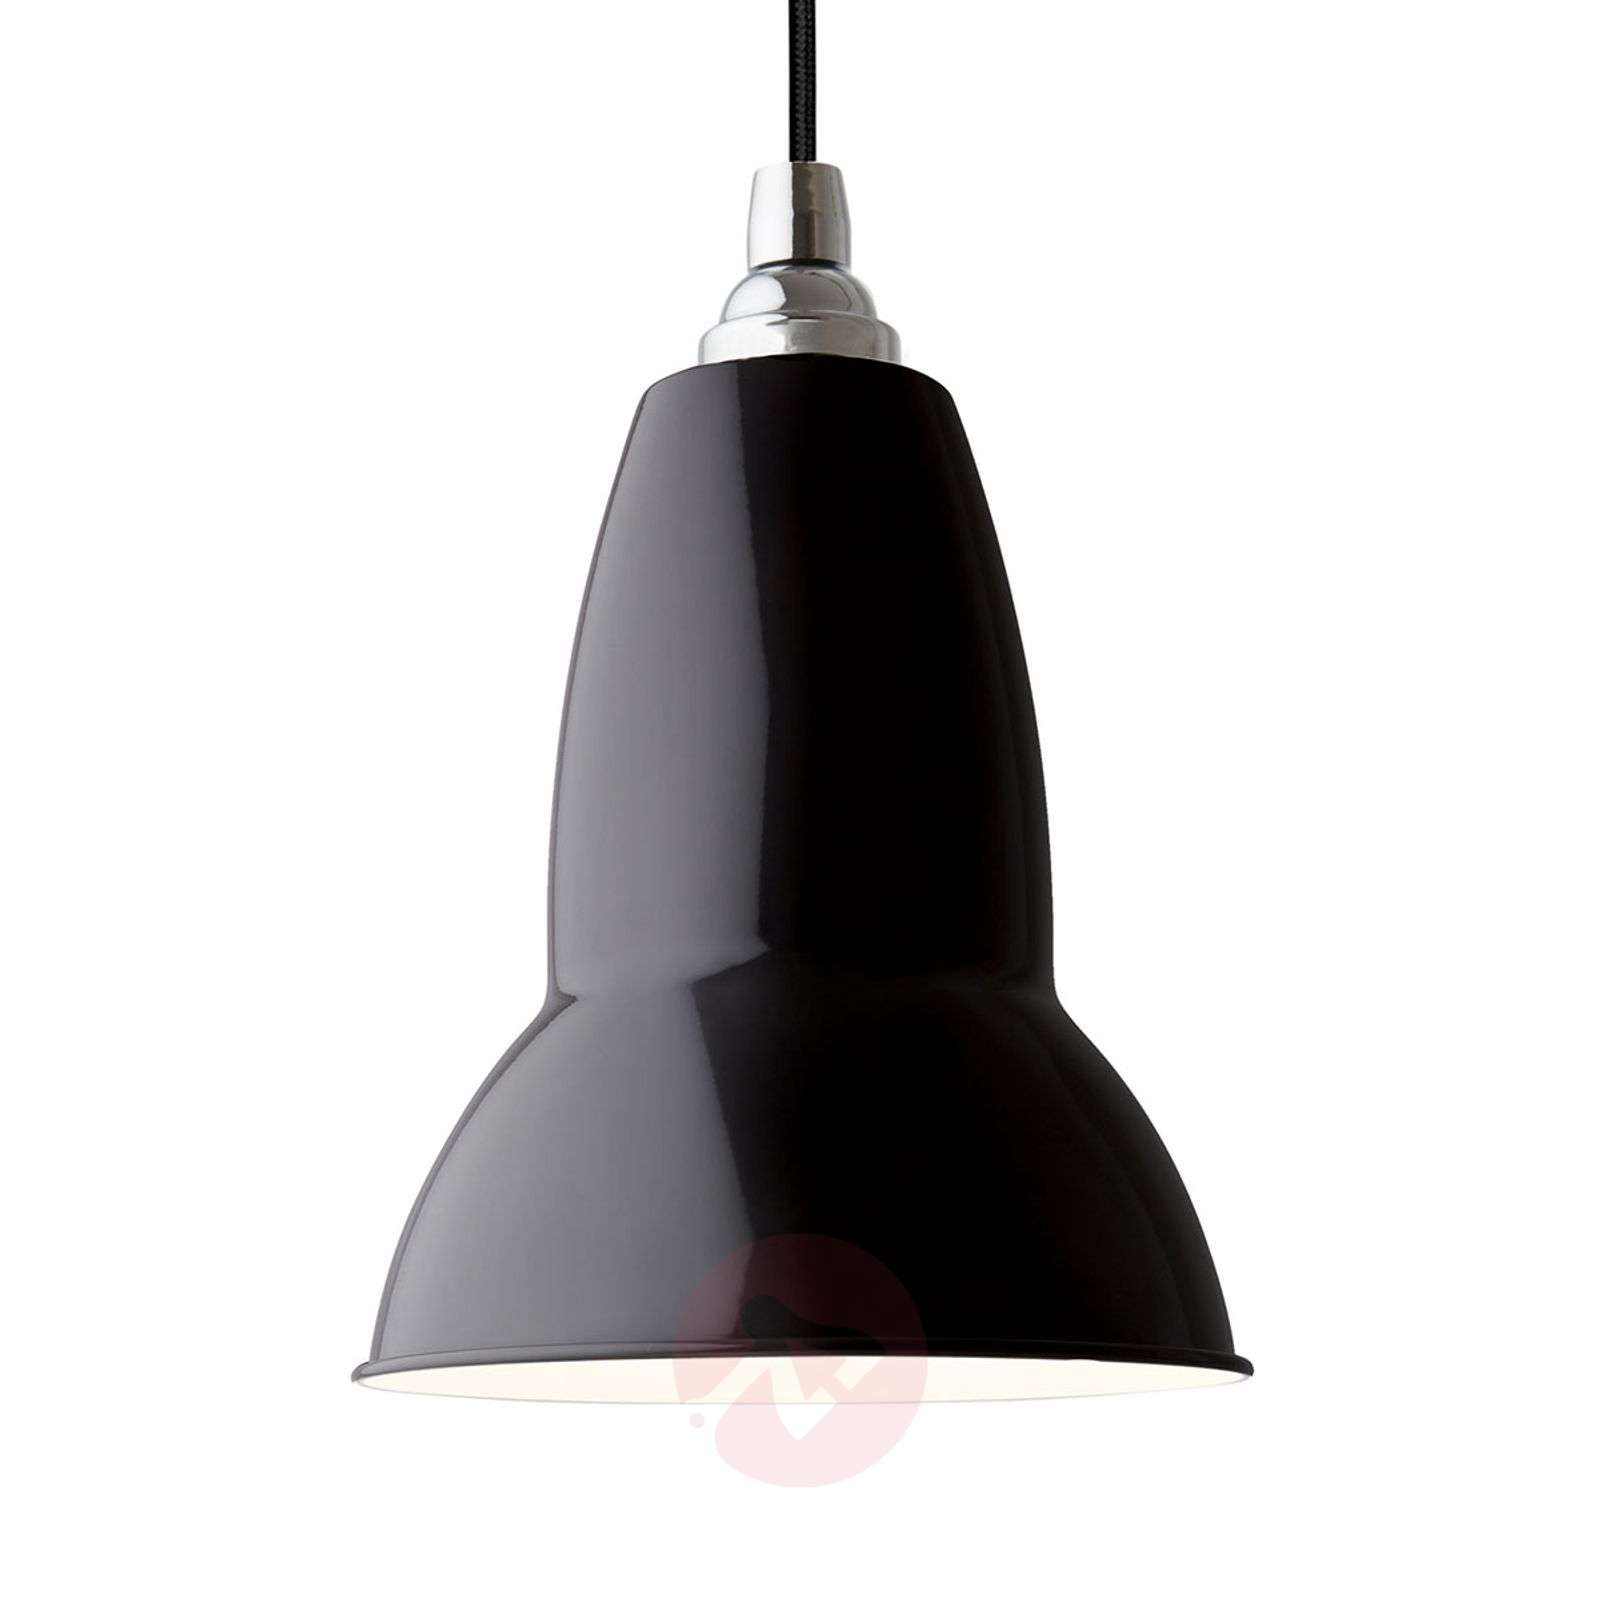 Anglepoise® Original 1227 hanging lamp-1073079X-01